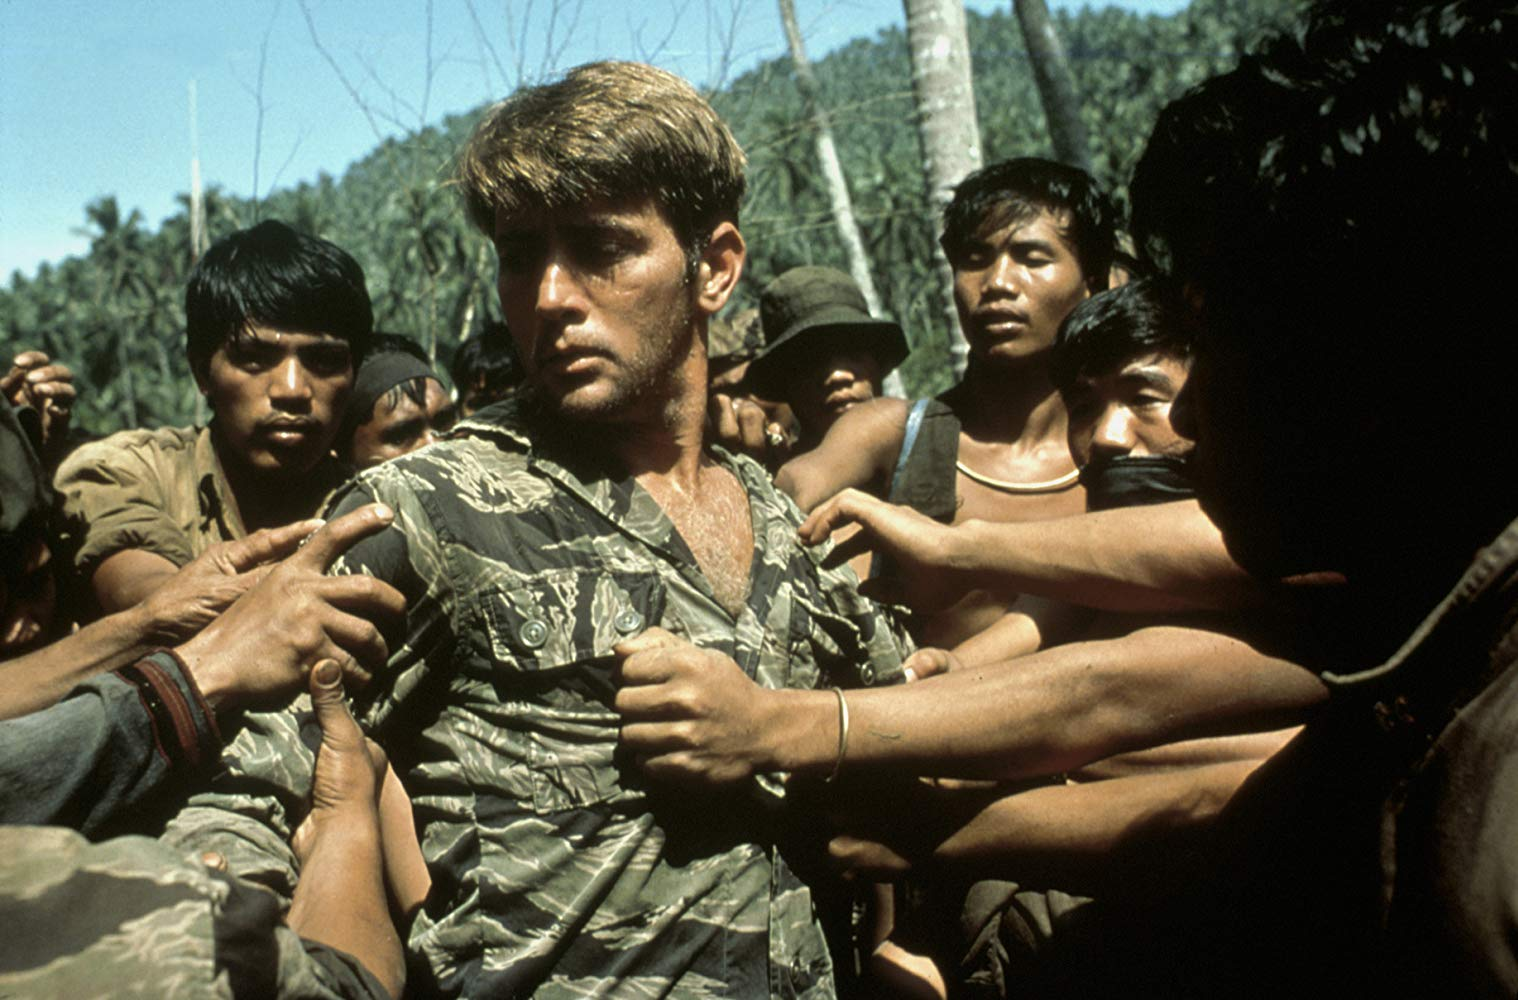 """Shot from the film """"Apocalypse Now"""""""